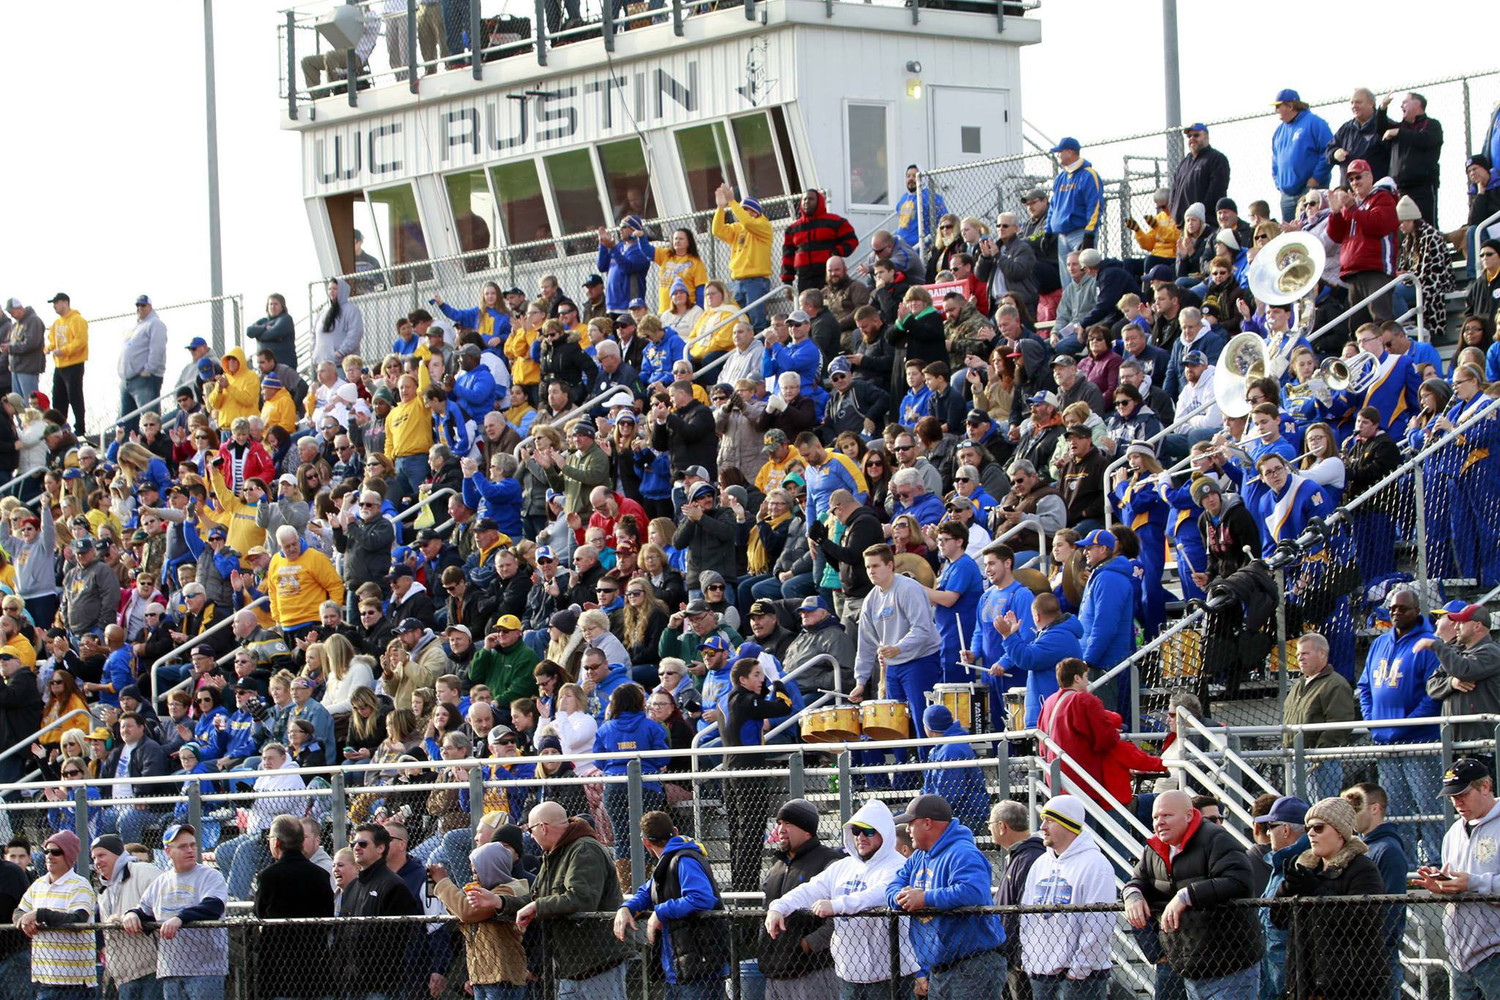 Middletown fans fill the stands.